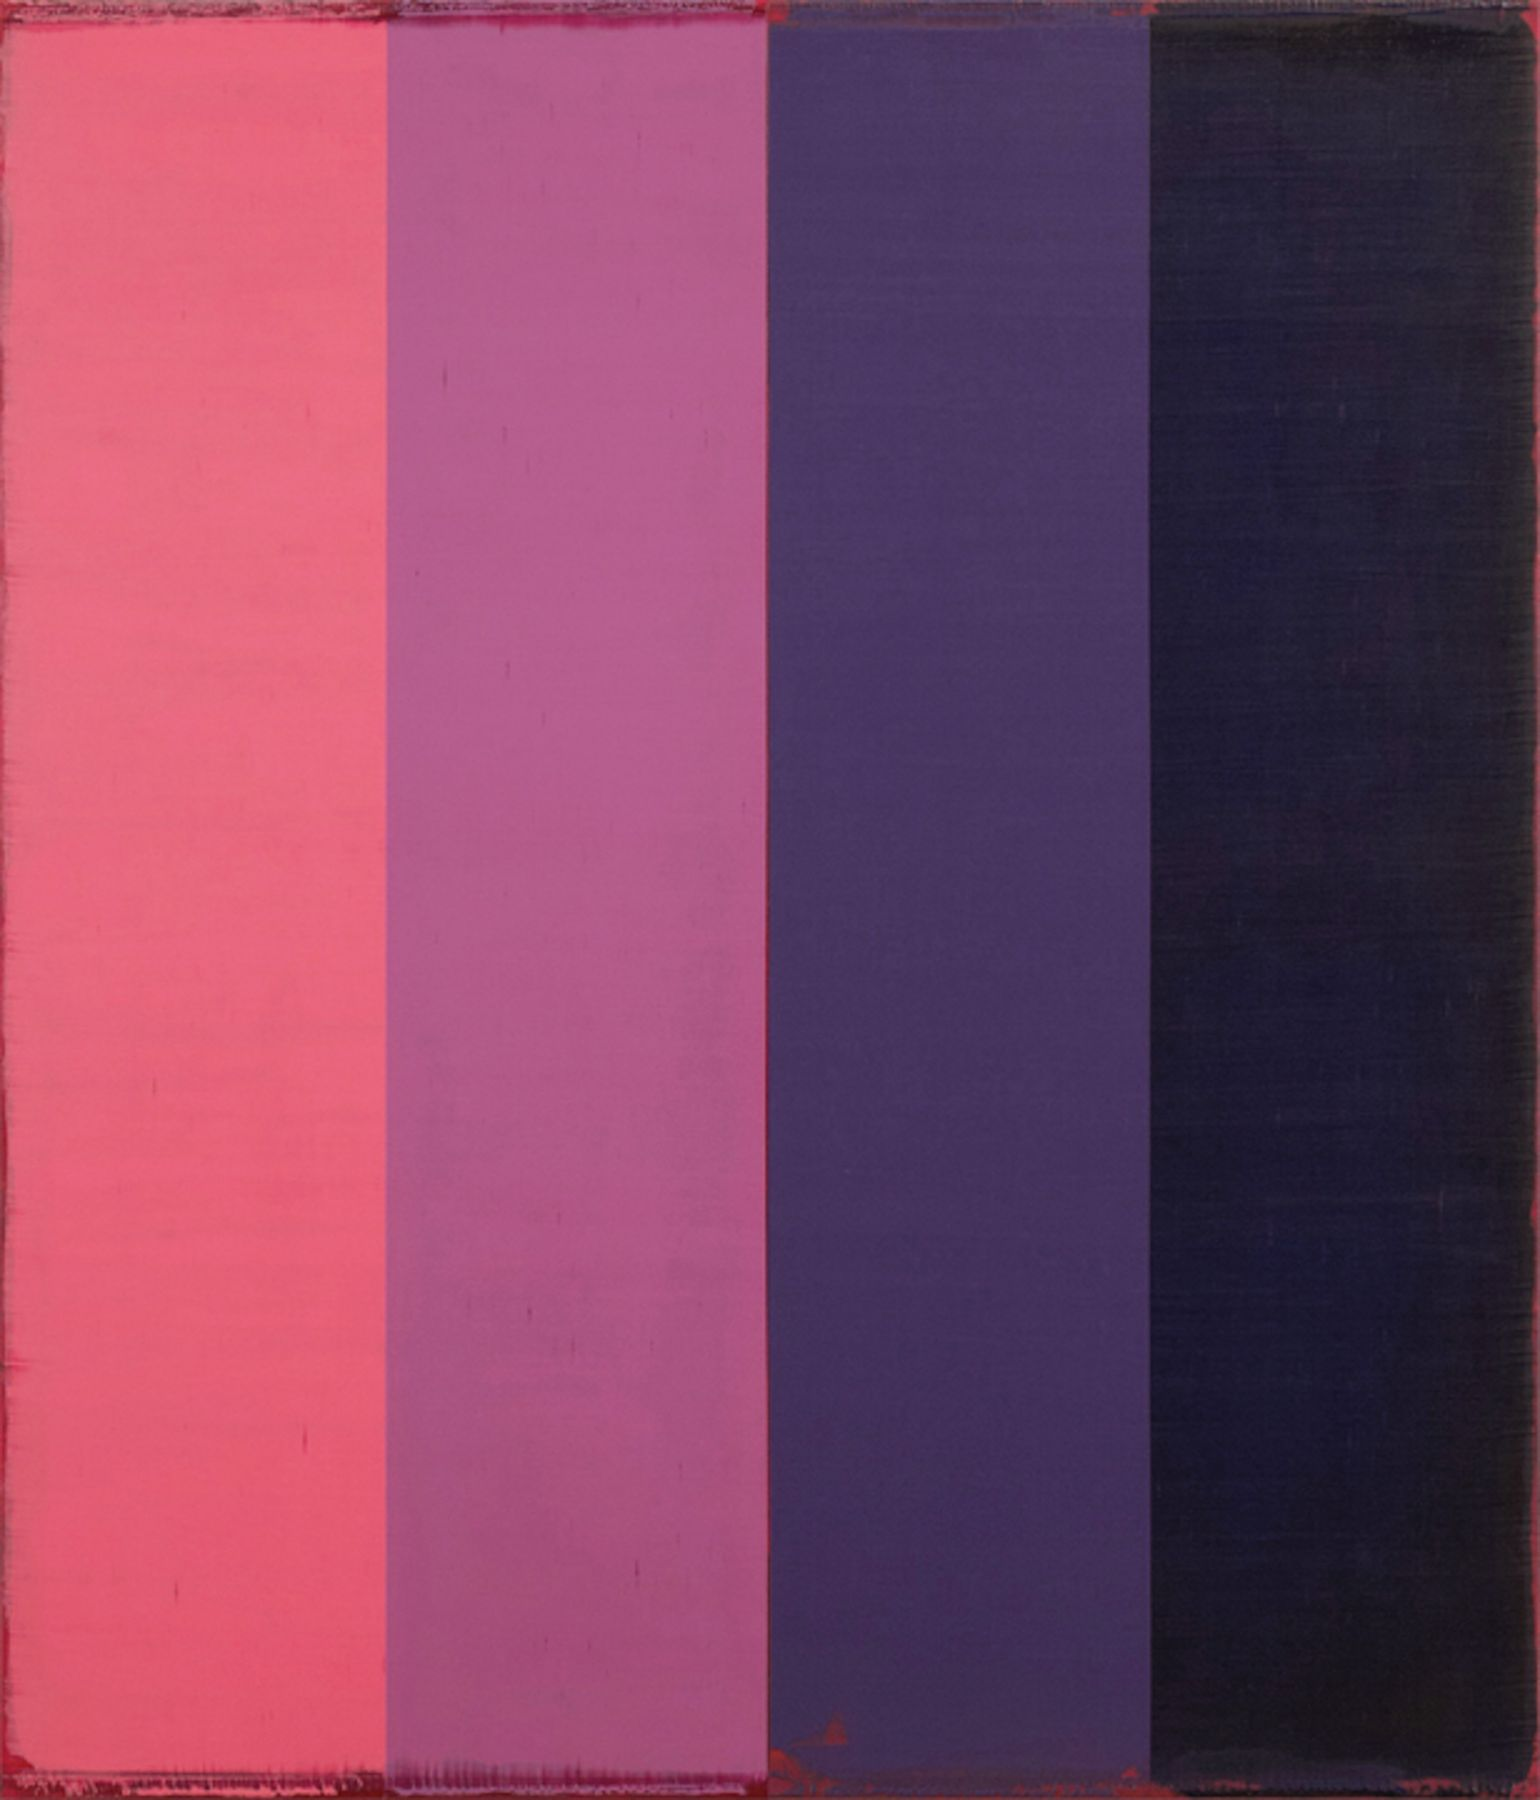 Steven Alexander, Arcade 8, 2018, Oil and acrylic on linen, 42 x 36 inches, Signed and titled on the verso, Vertical rectangles in pink, lilac, purple and navy blue, Steven Alexander is an American artist who makes abstract paintings characterized by luminous color, sensuous surfaces and iconic configurations.